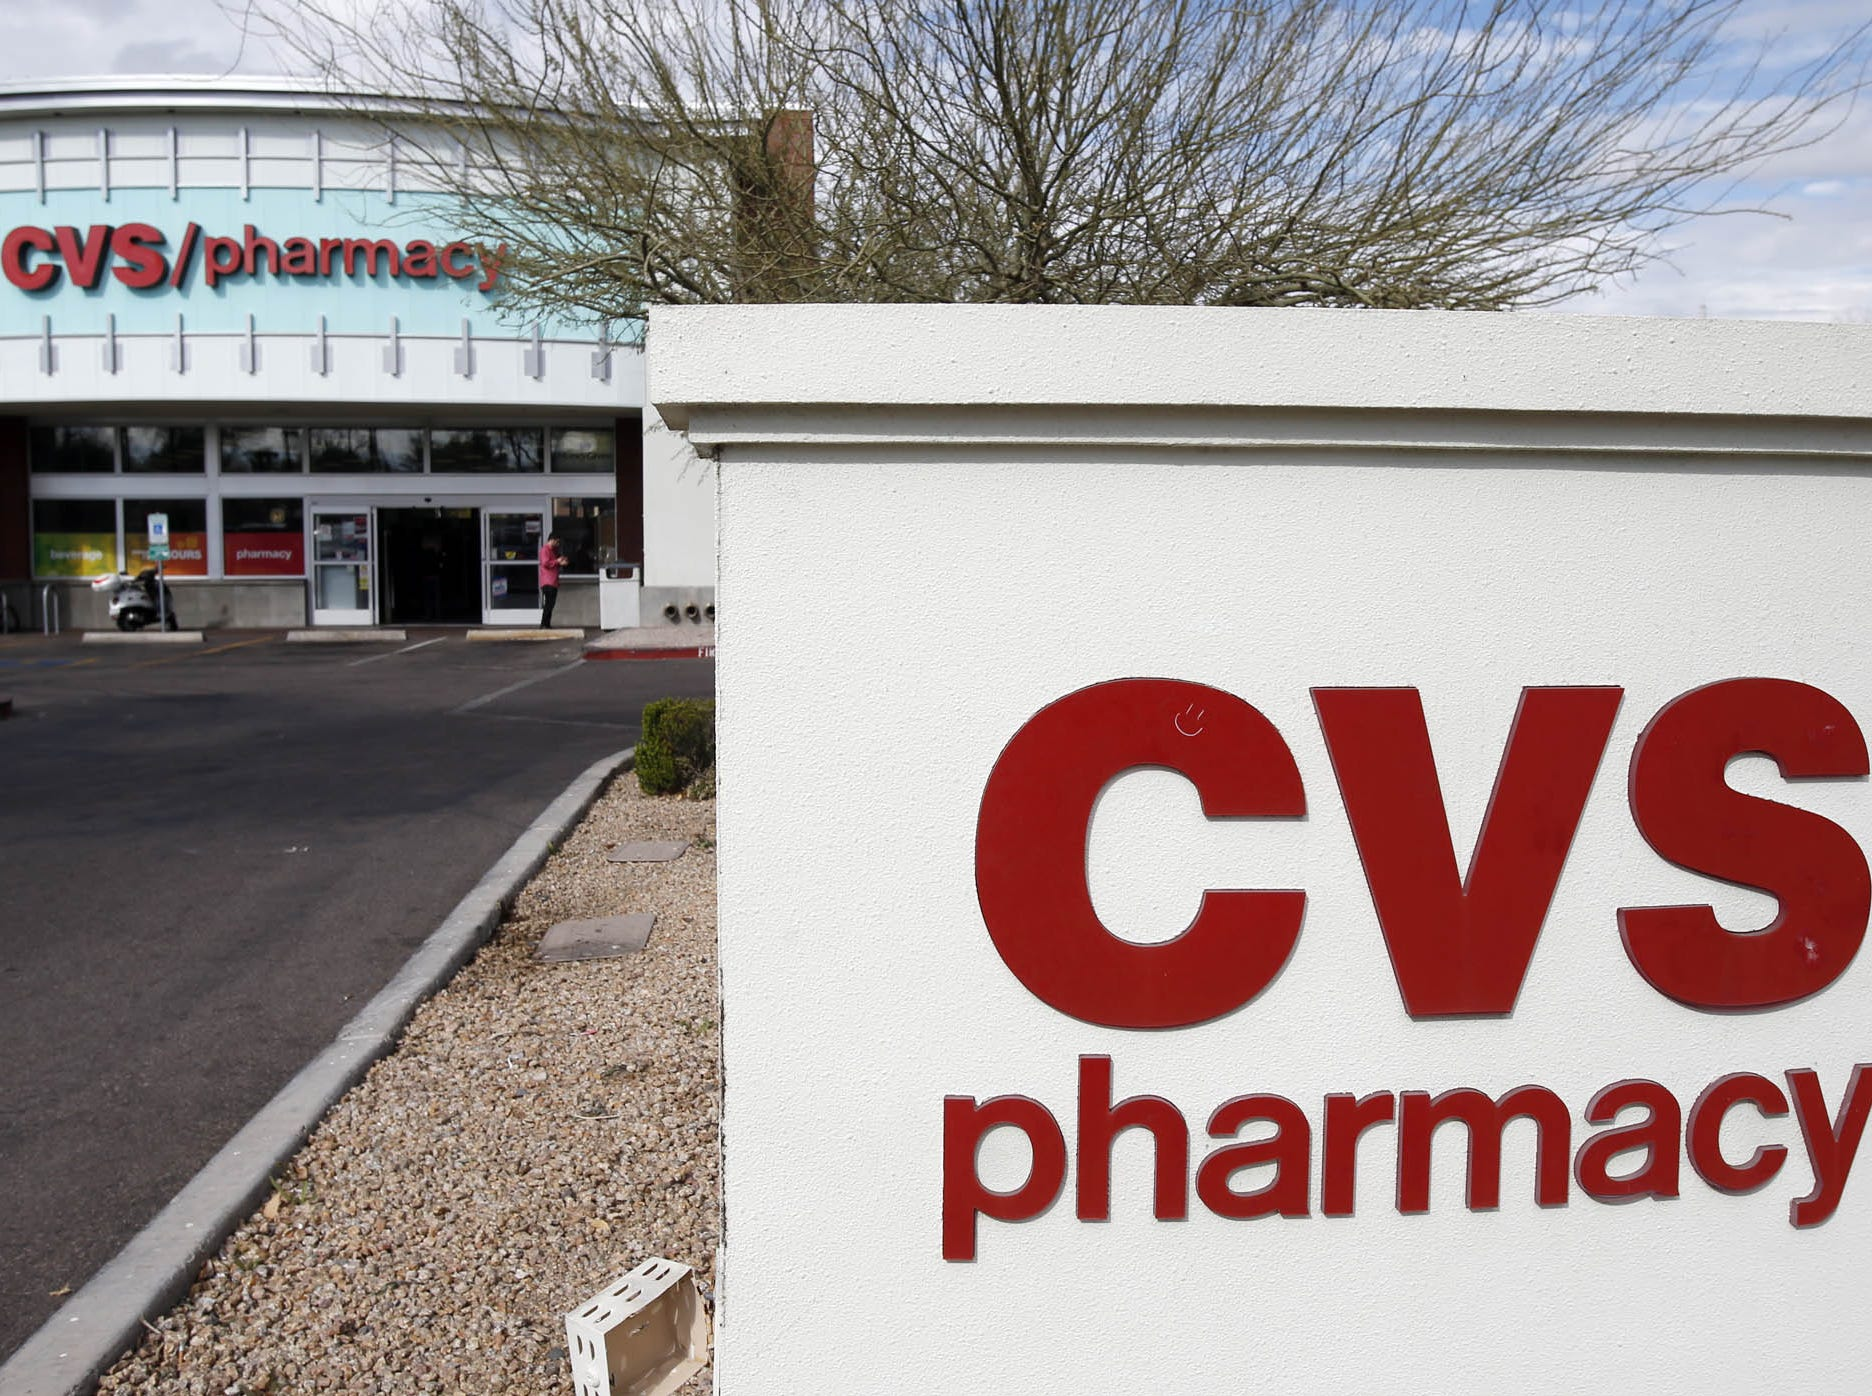 CVS Health, hiring 1,220. The company operates pharmacies and retail centers across the country. Locations in metro Phoenix, Tucson, Prescott, Lake Havasu City and Yuma have openings. More info: jobs.cvshealth.com.